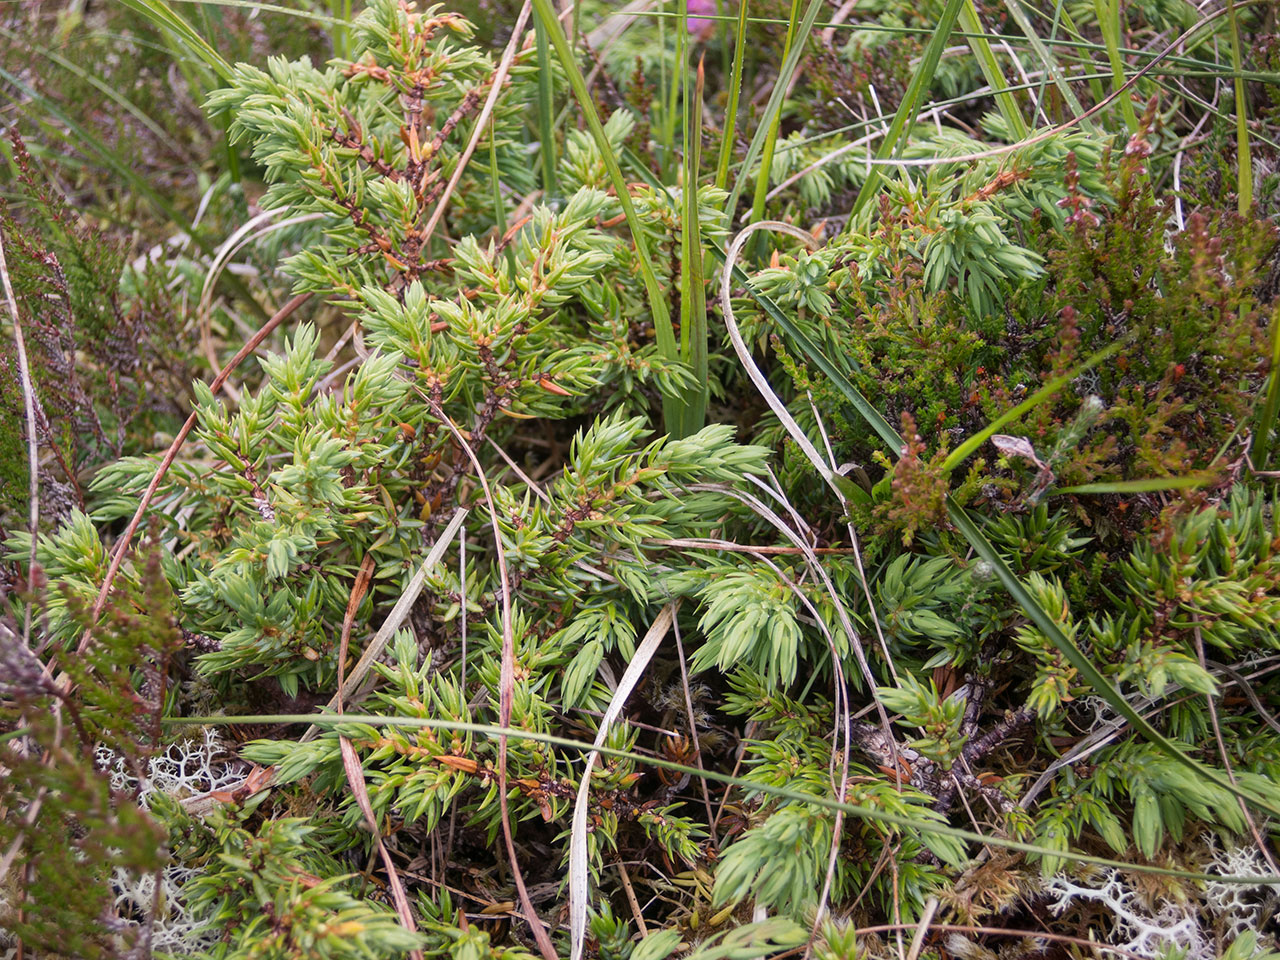 Juniper plant on the Lewis moorland